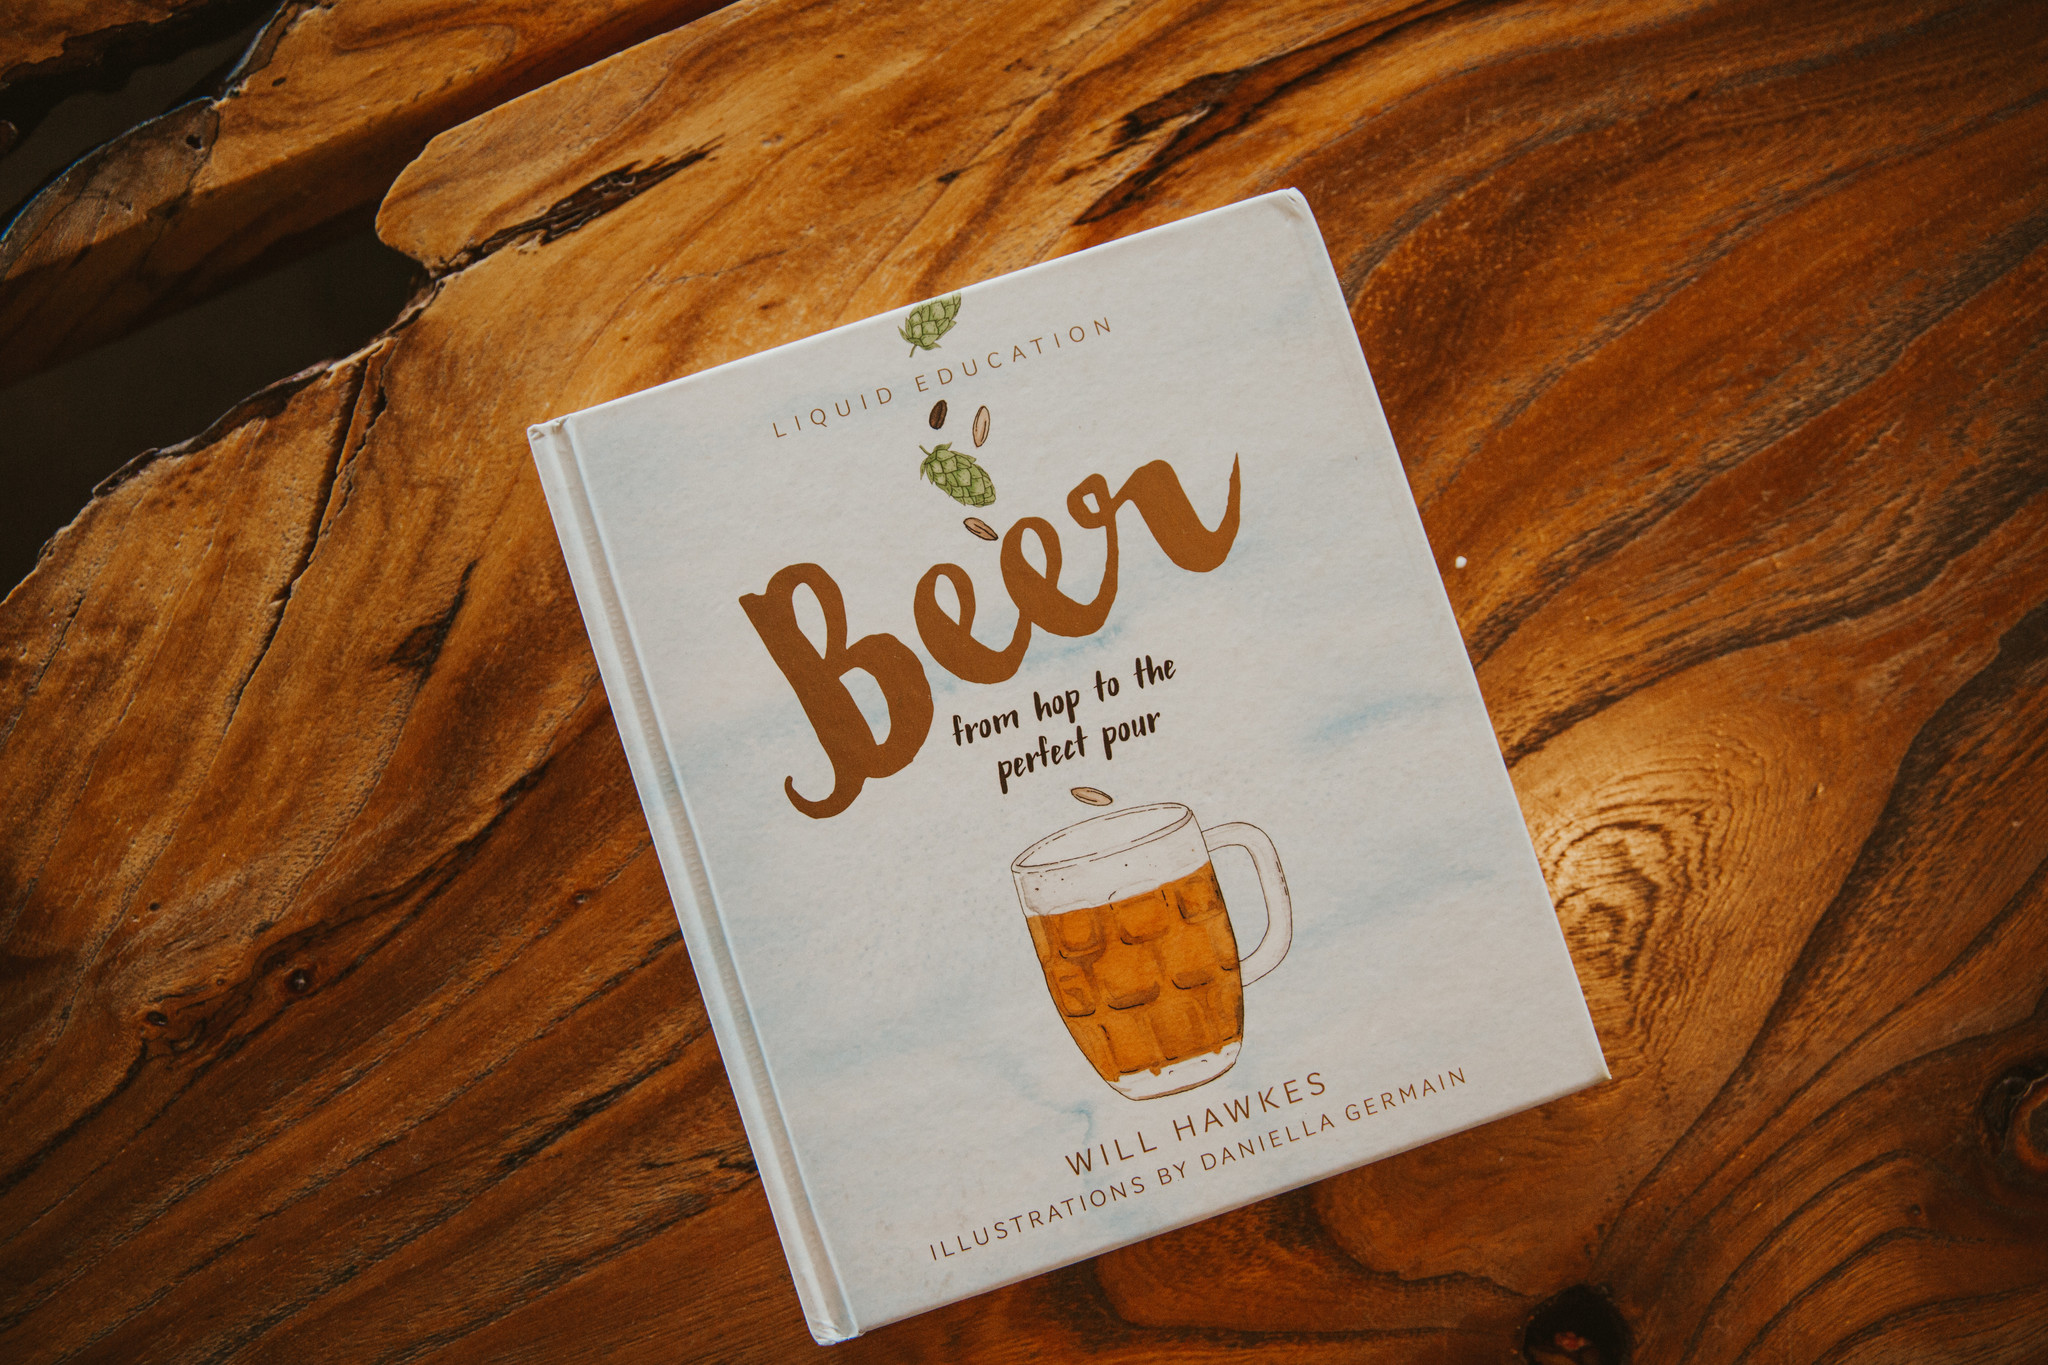 Beer from Hop to Perfect Pour Book